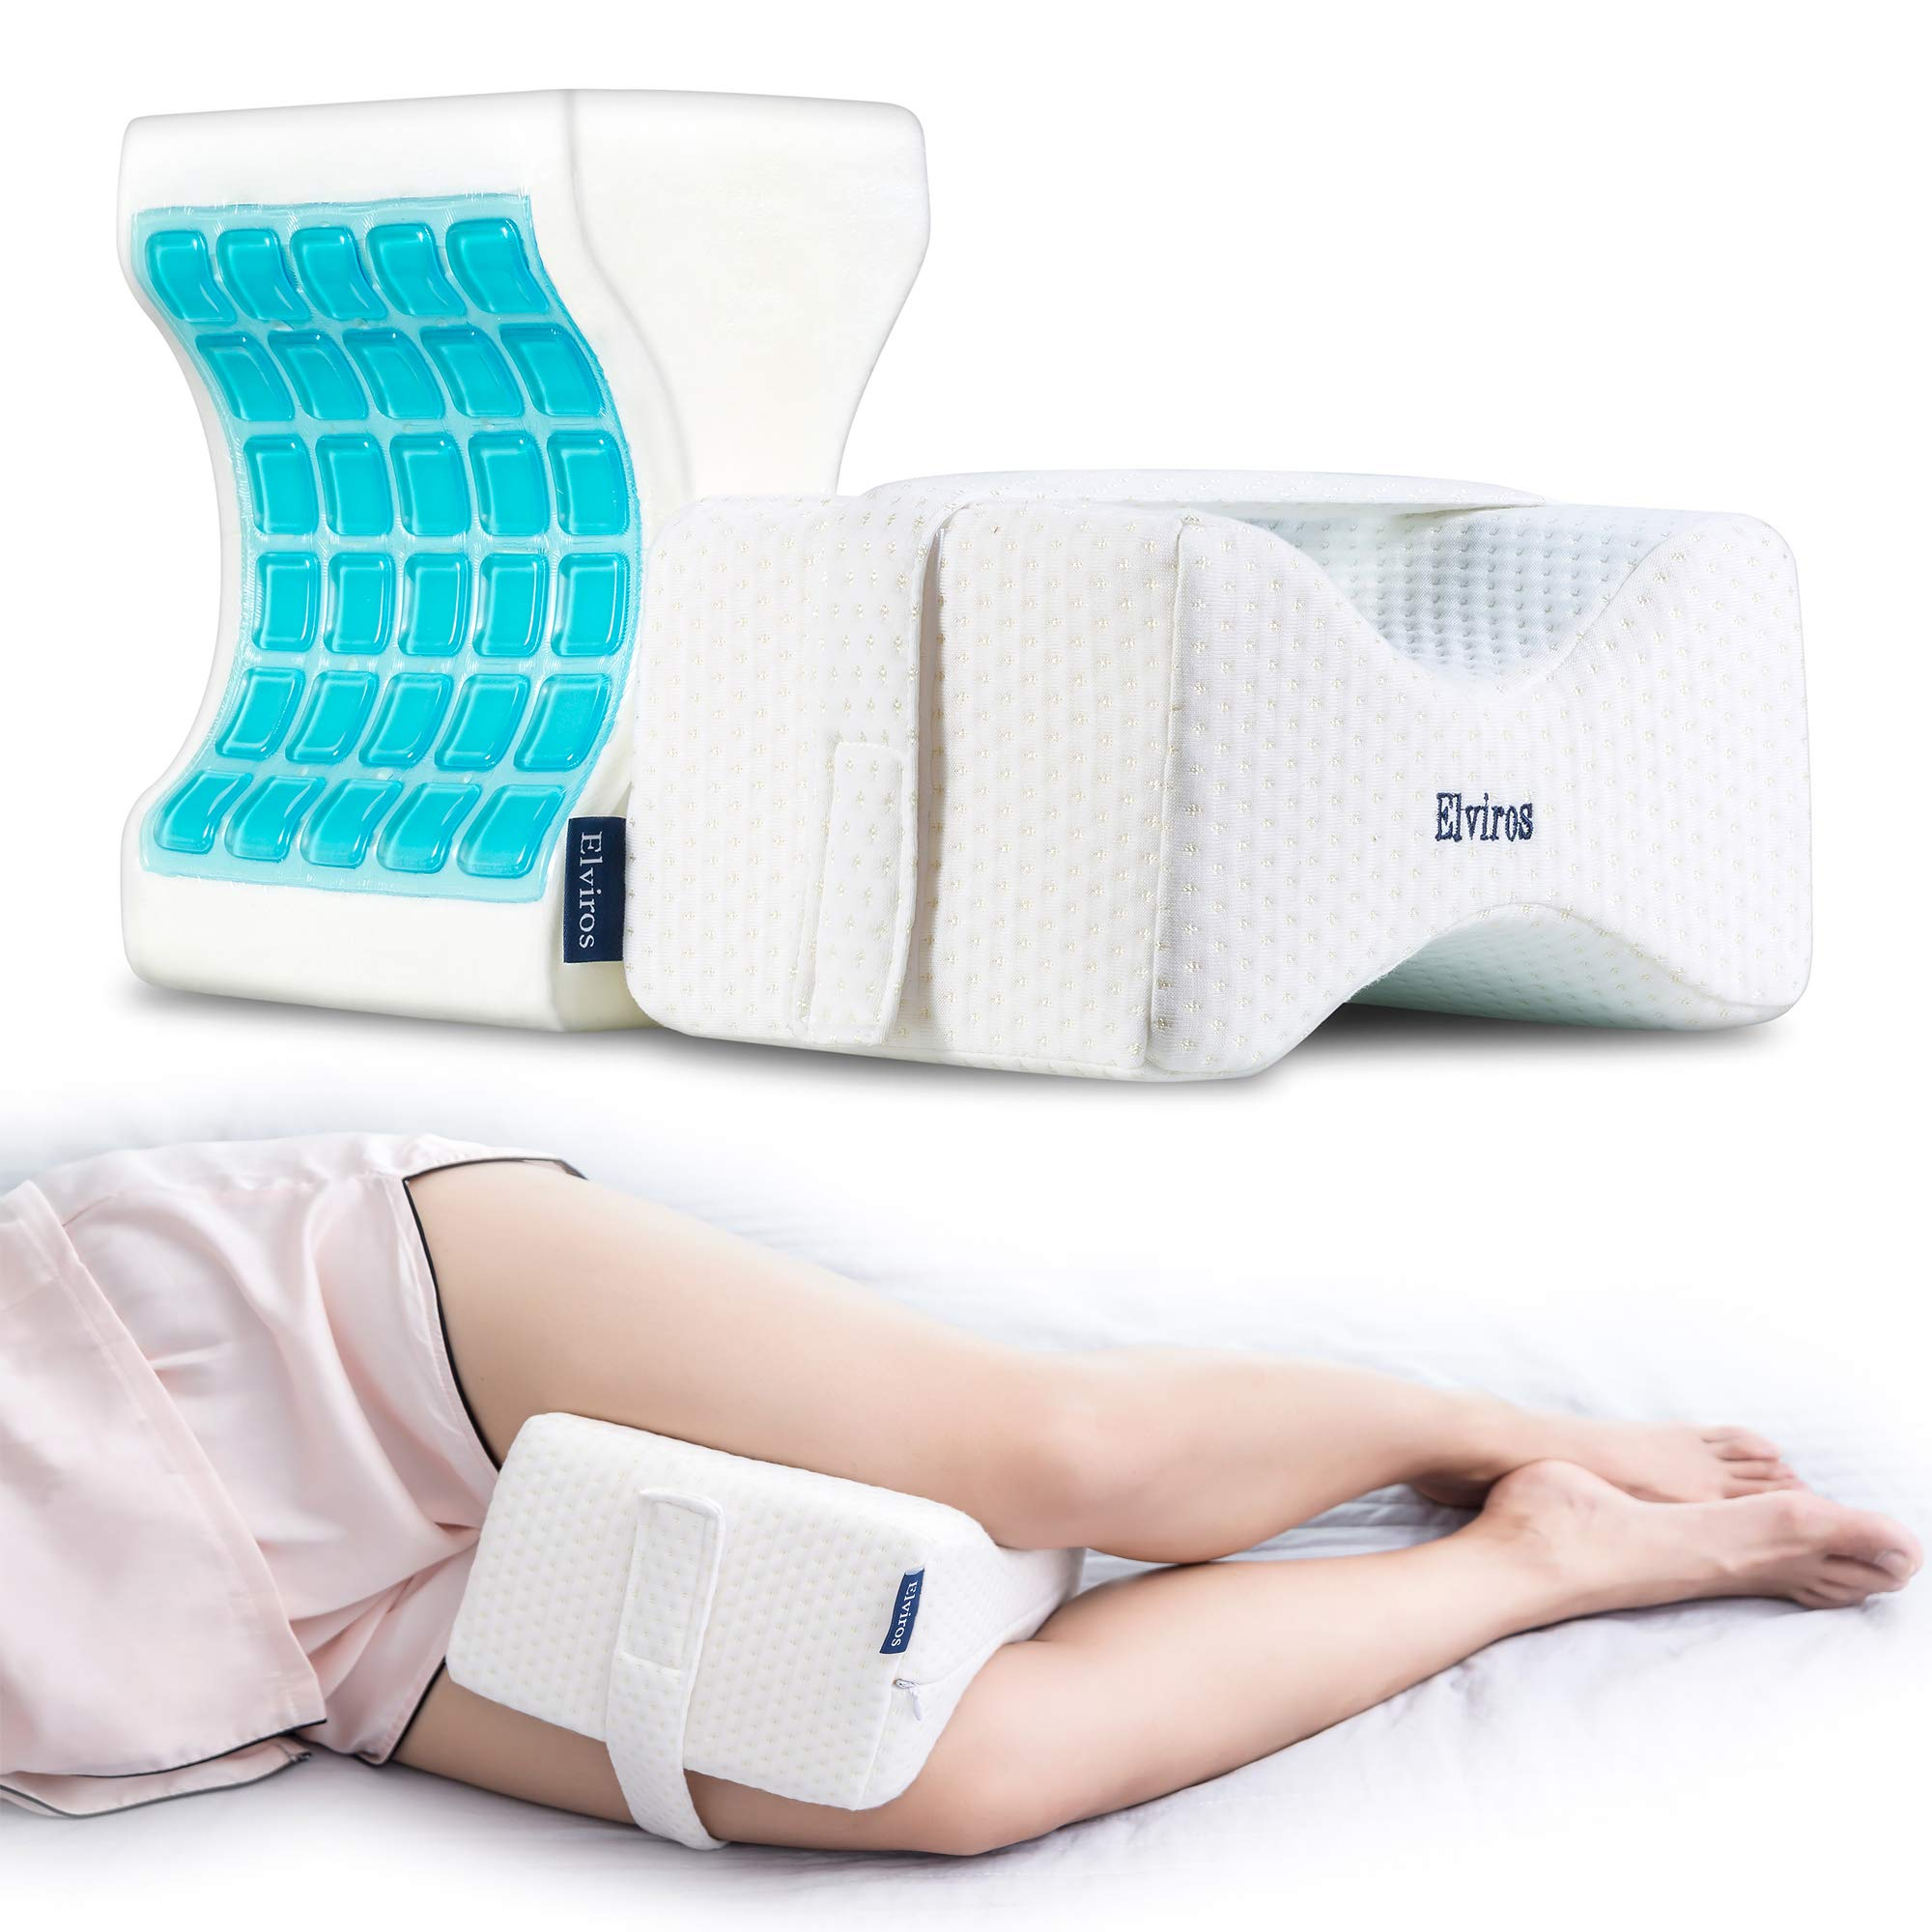 Elviros Knee Pillow for Side Sleepers, Cooling Gel Memory Foam Orthopedic Leg Pillows Support Cushion for Pregnancy, Hip, Back, Spine Alignment & Pain Relief